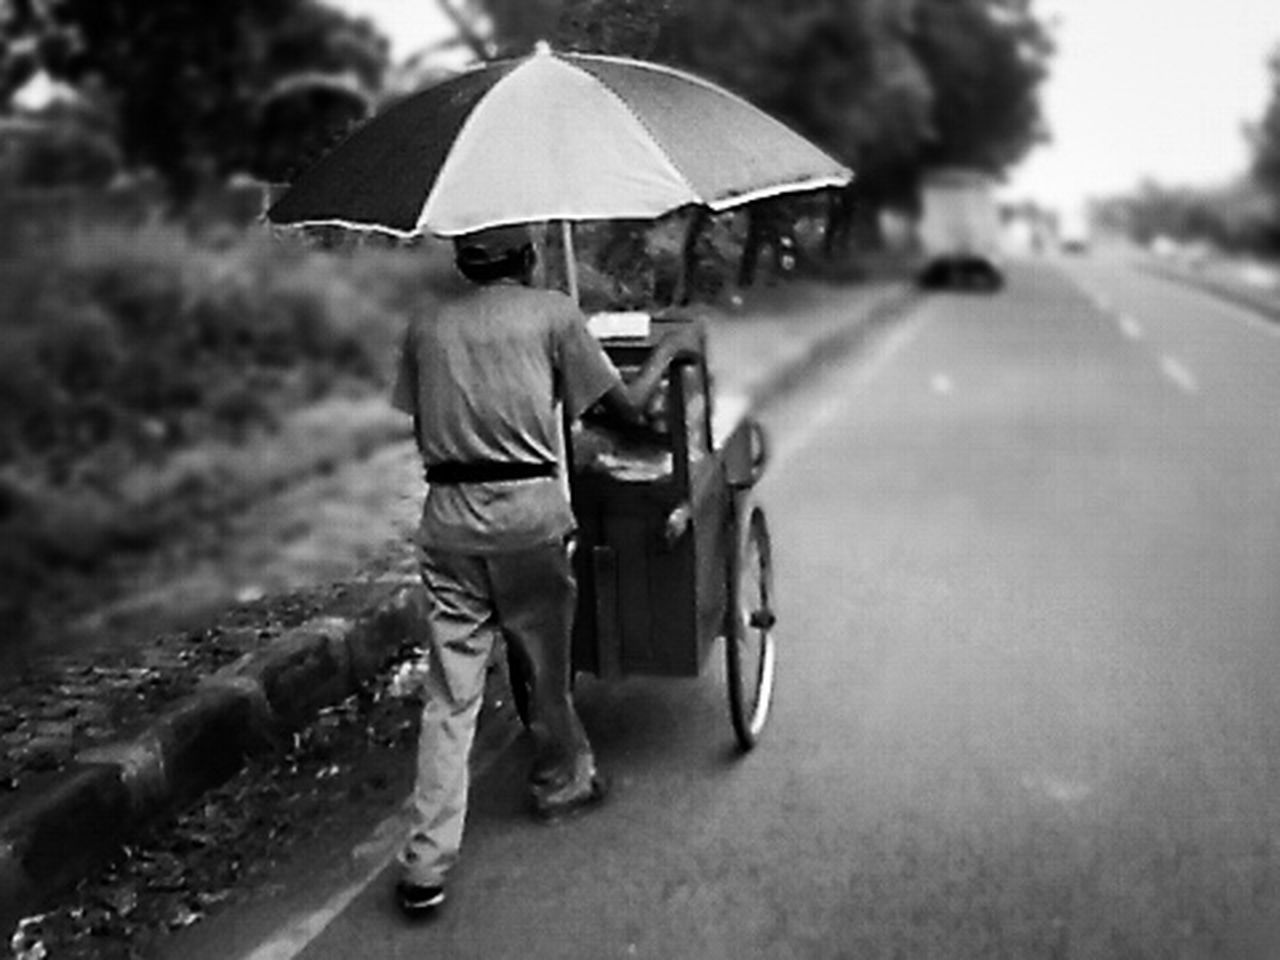 This is the real hero,everyday, every hour he struggled to change the pain into power, the power to make money so that his family can live Real People Rear View Road Walking Outdoors Low Angle View Streetphotography Black And White Oldman Real Photography Real Life Realhero